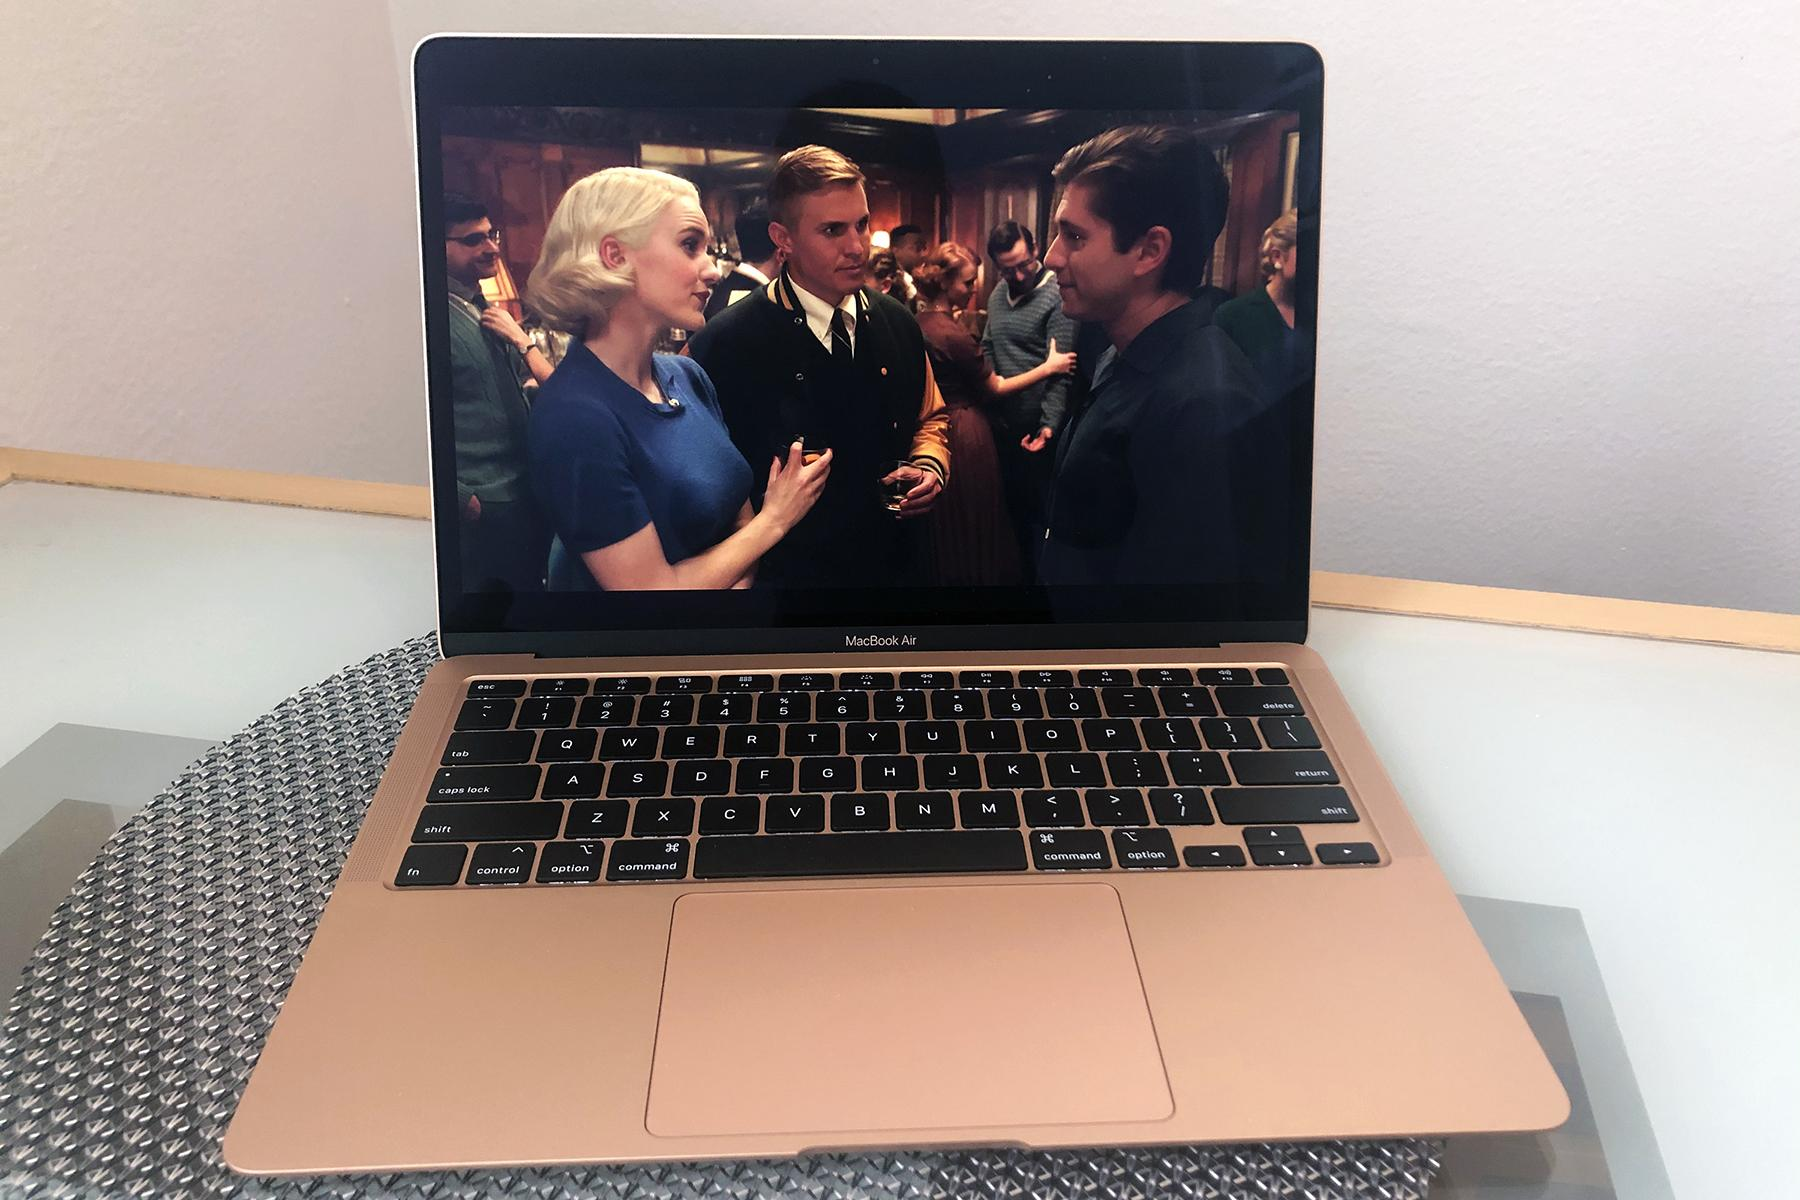 Netflix will only stream in 4K to Macs that have a T2 security chip | Engadget